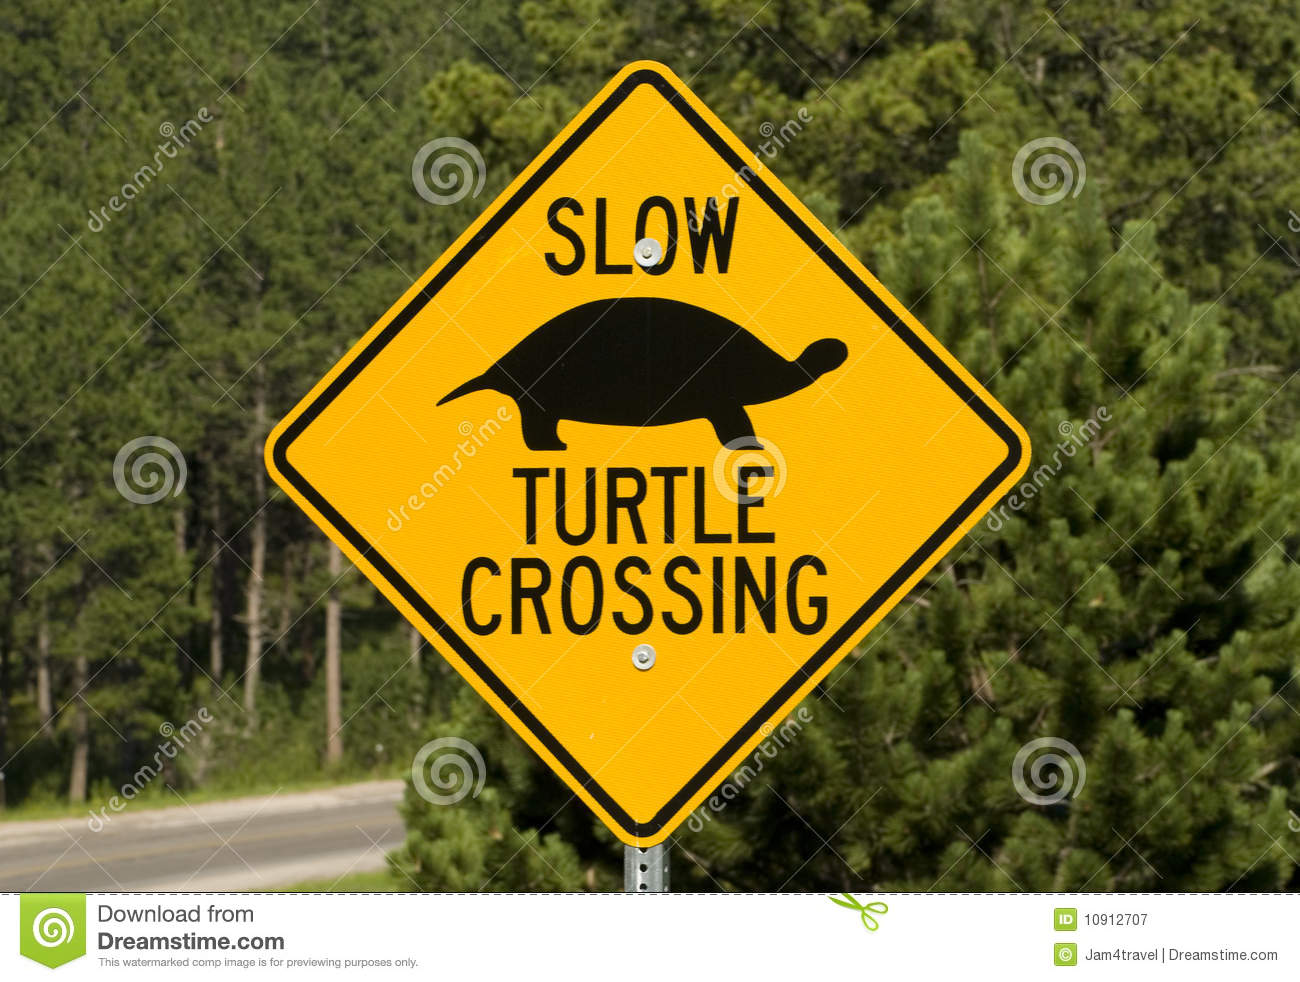 Road Crossing Clipart Turtle Road Crossing Sign Royalty Free Stock Photography